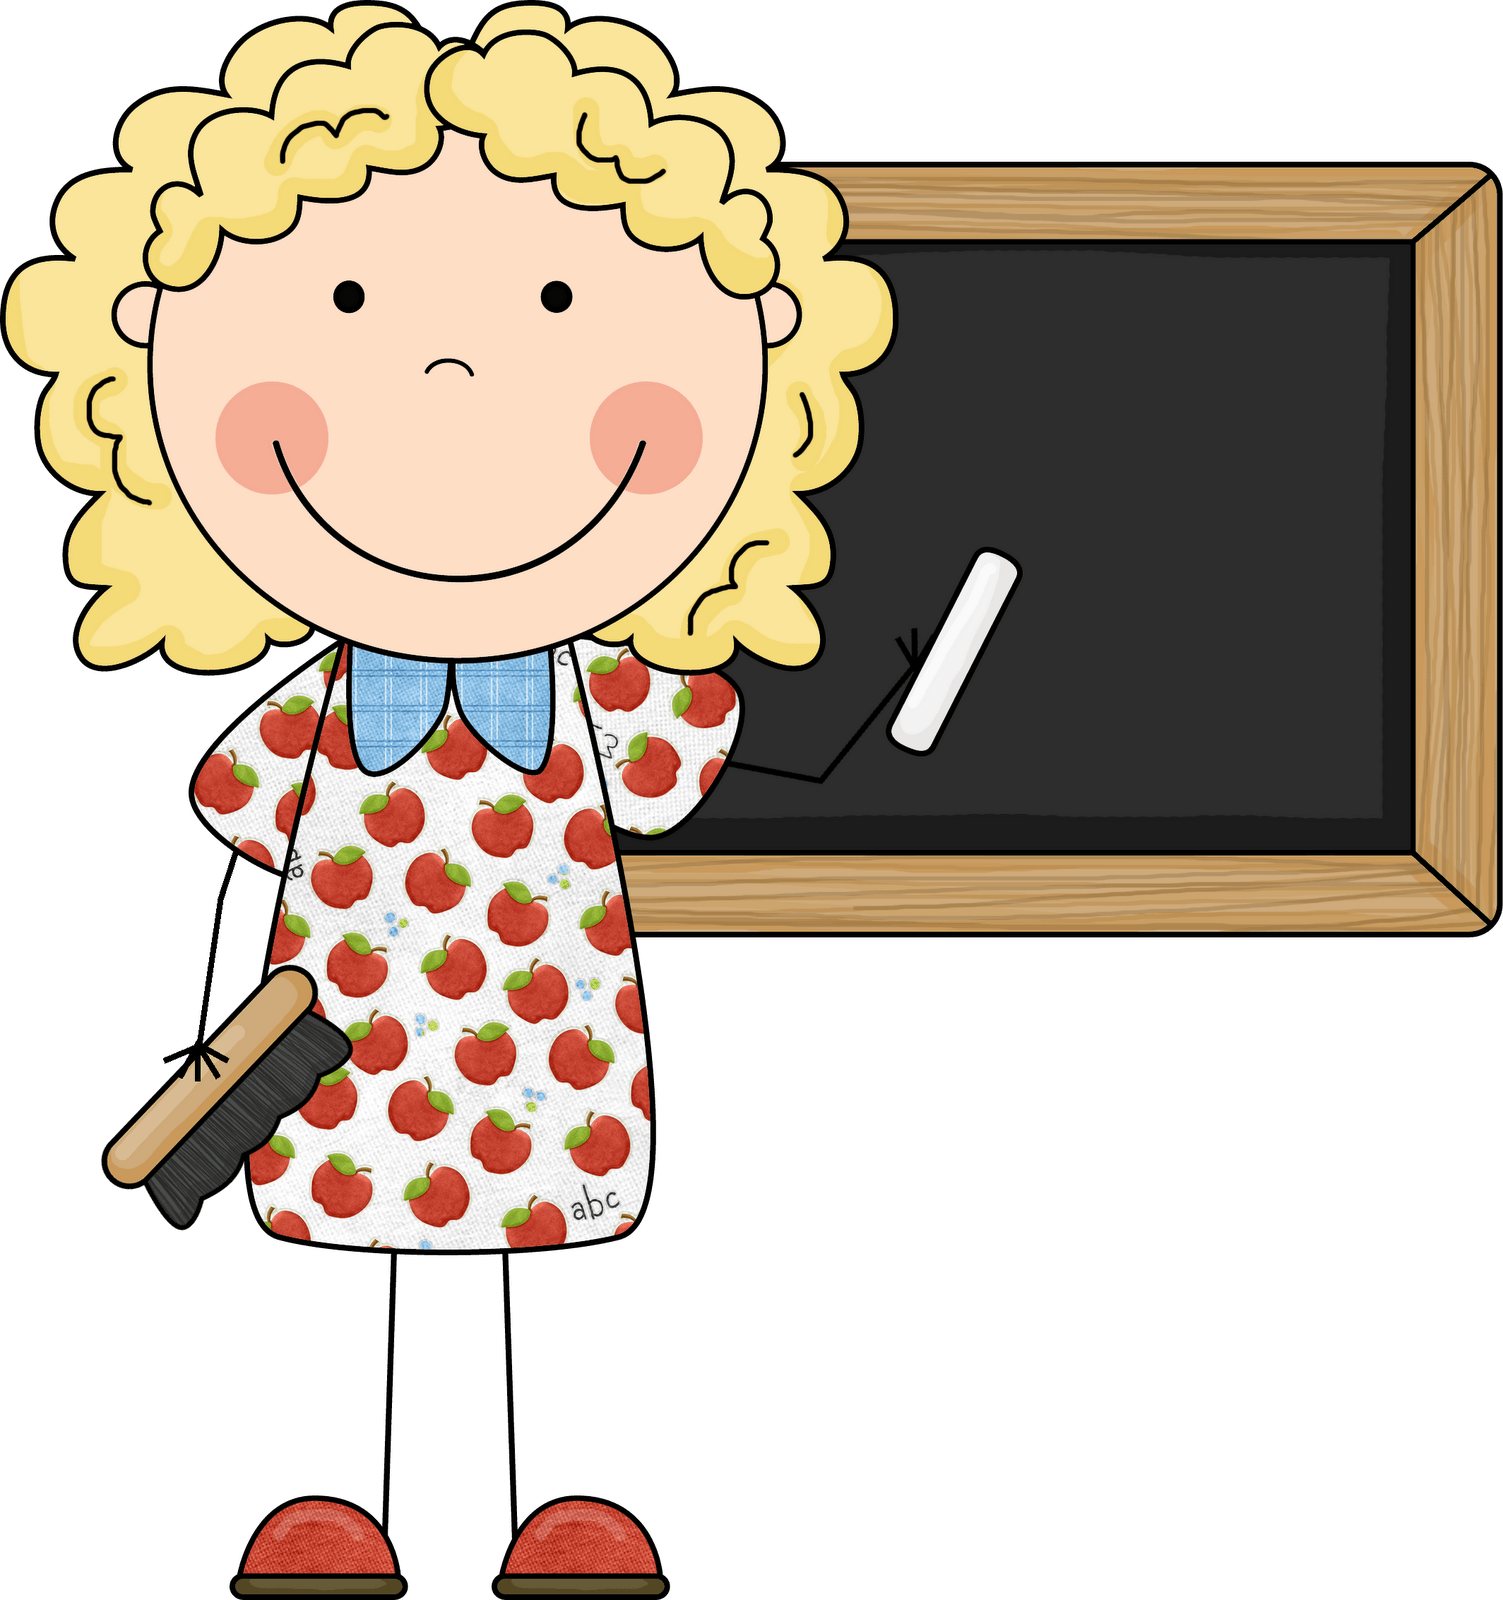 Hd clear cliparts for powerpoints teacher